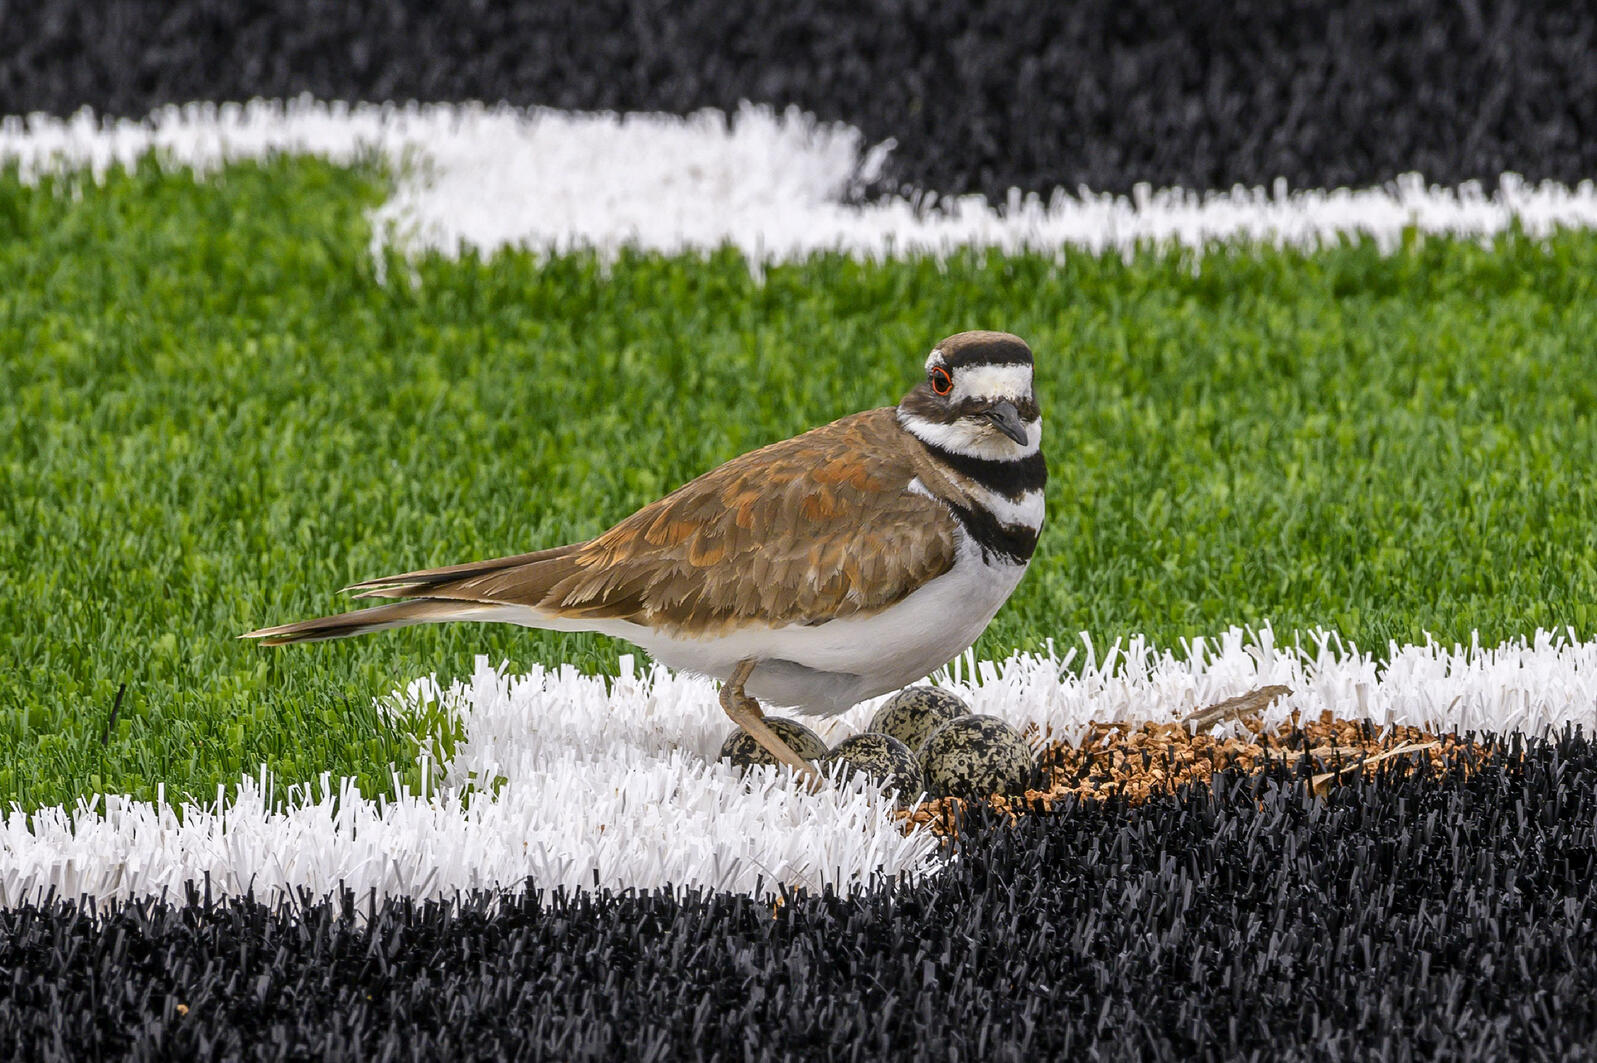 To this Killdeer, the end zone looked like the perfect spot for a clutch of eggs. Renée C. Byer/Sacramento Bee/ZUMA Press